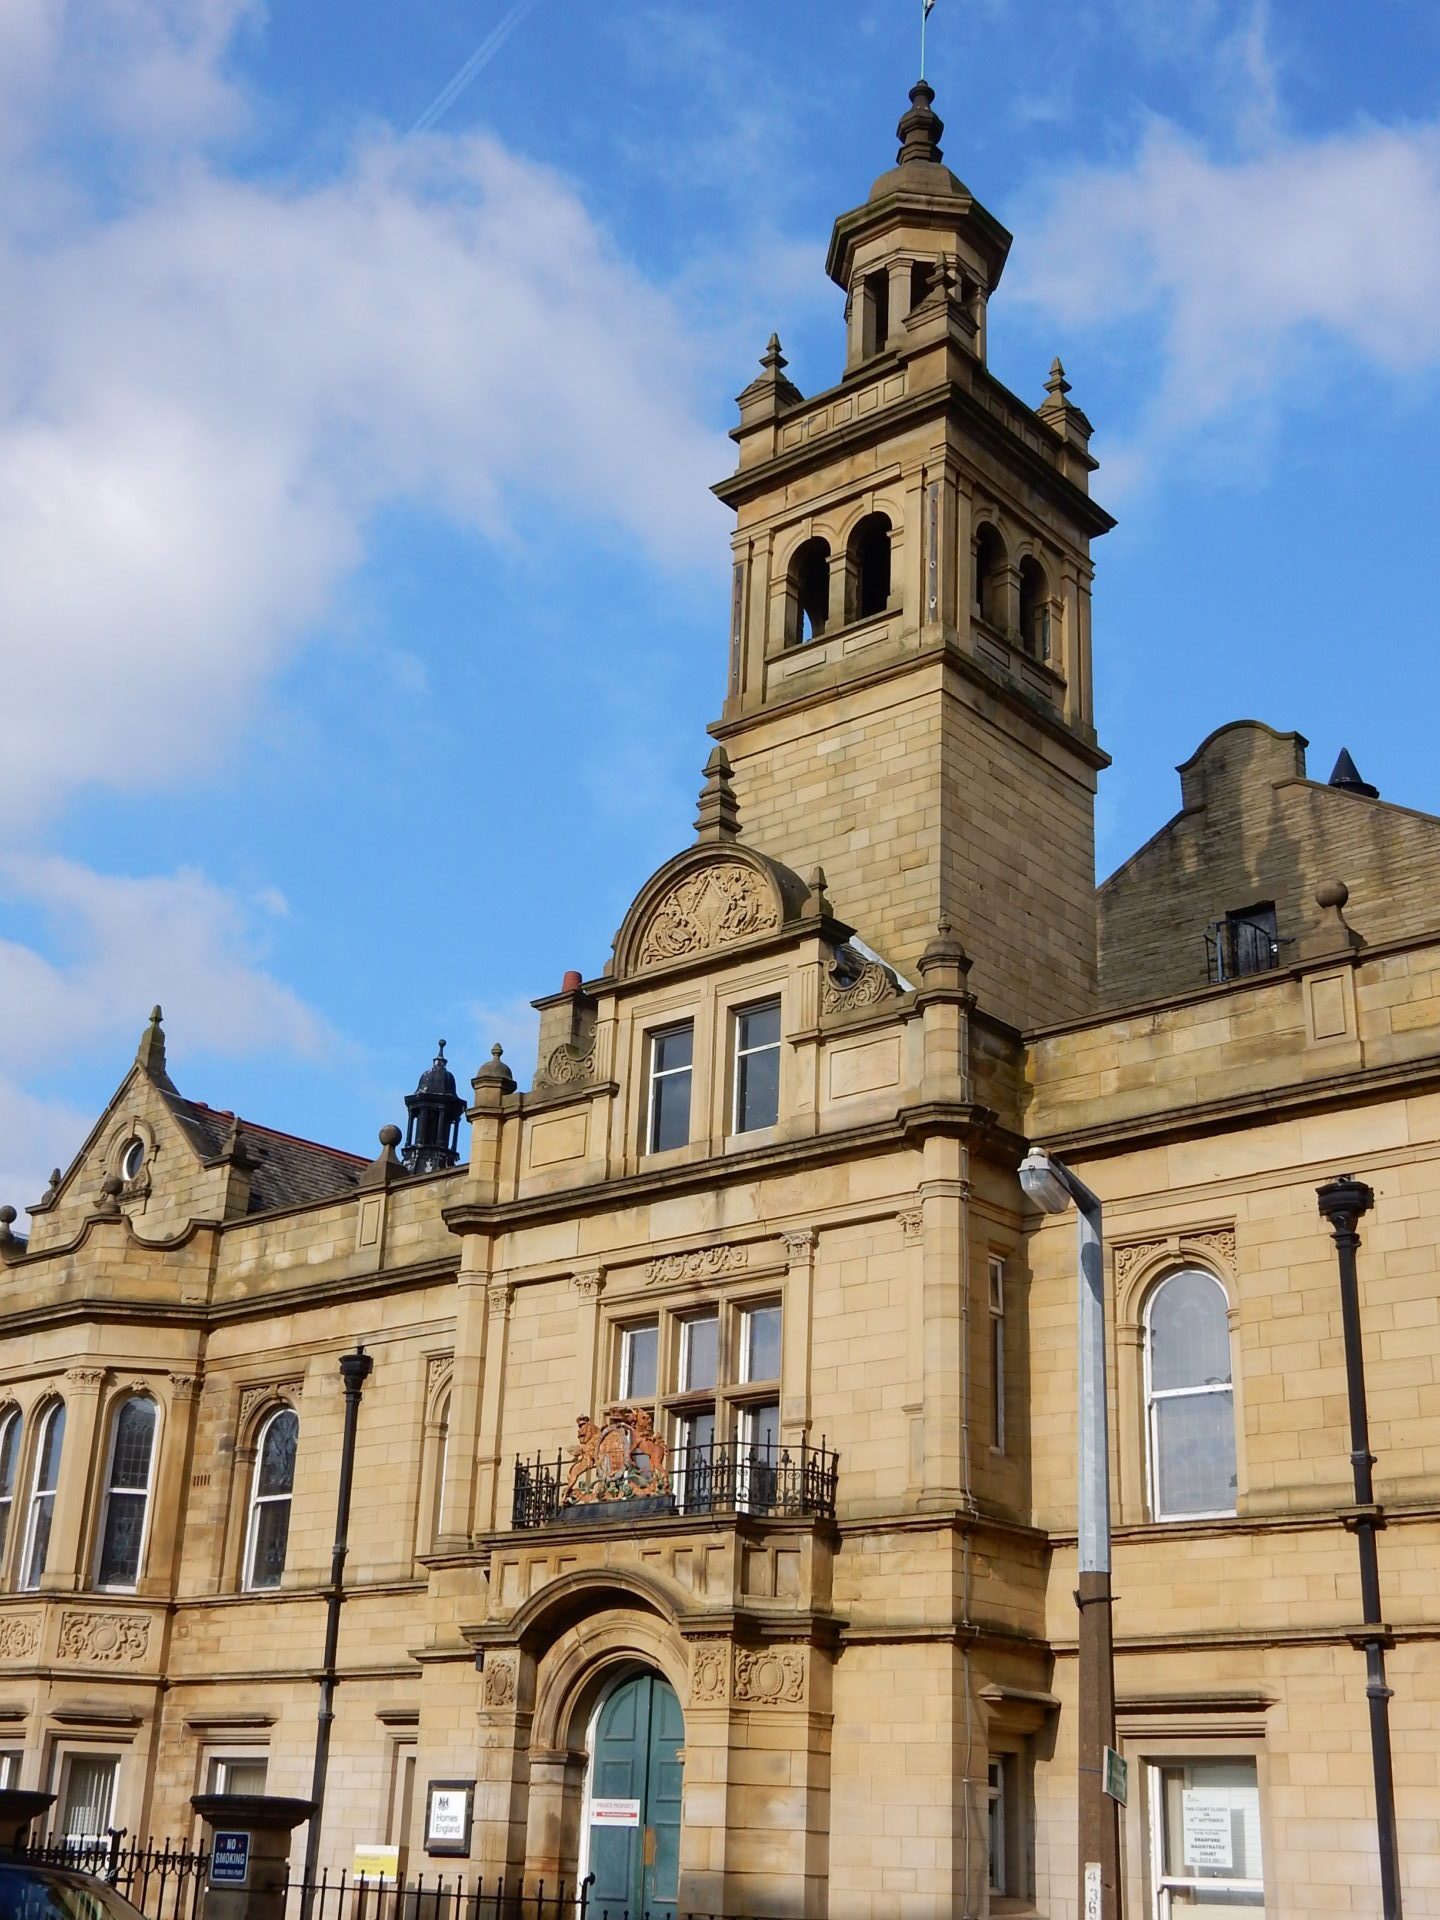 Halifax Magistrates' Court